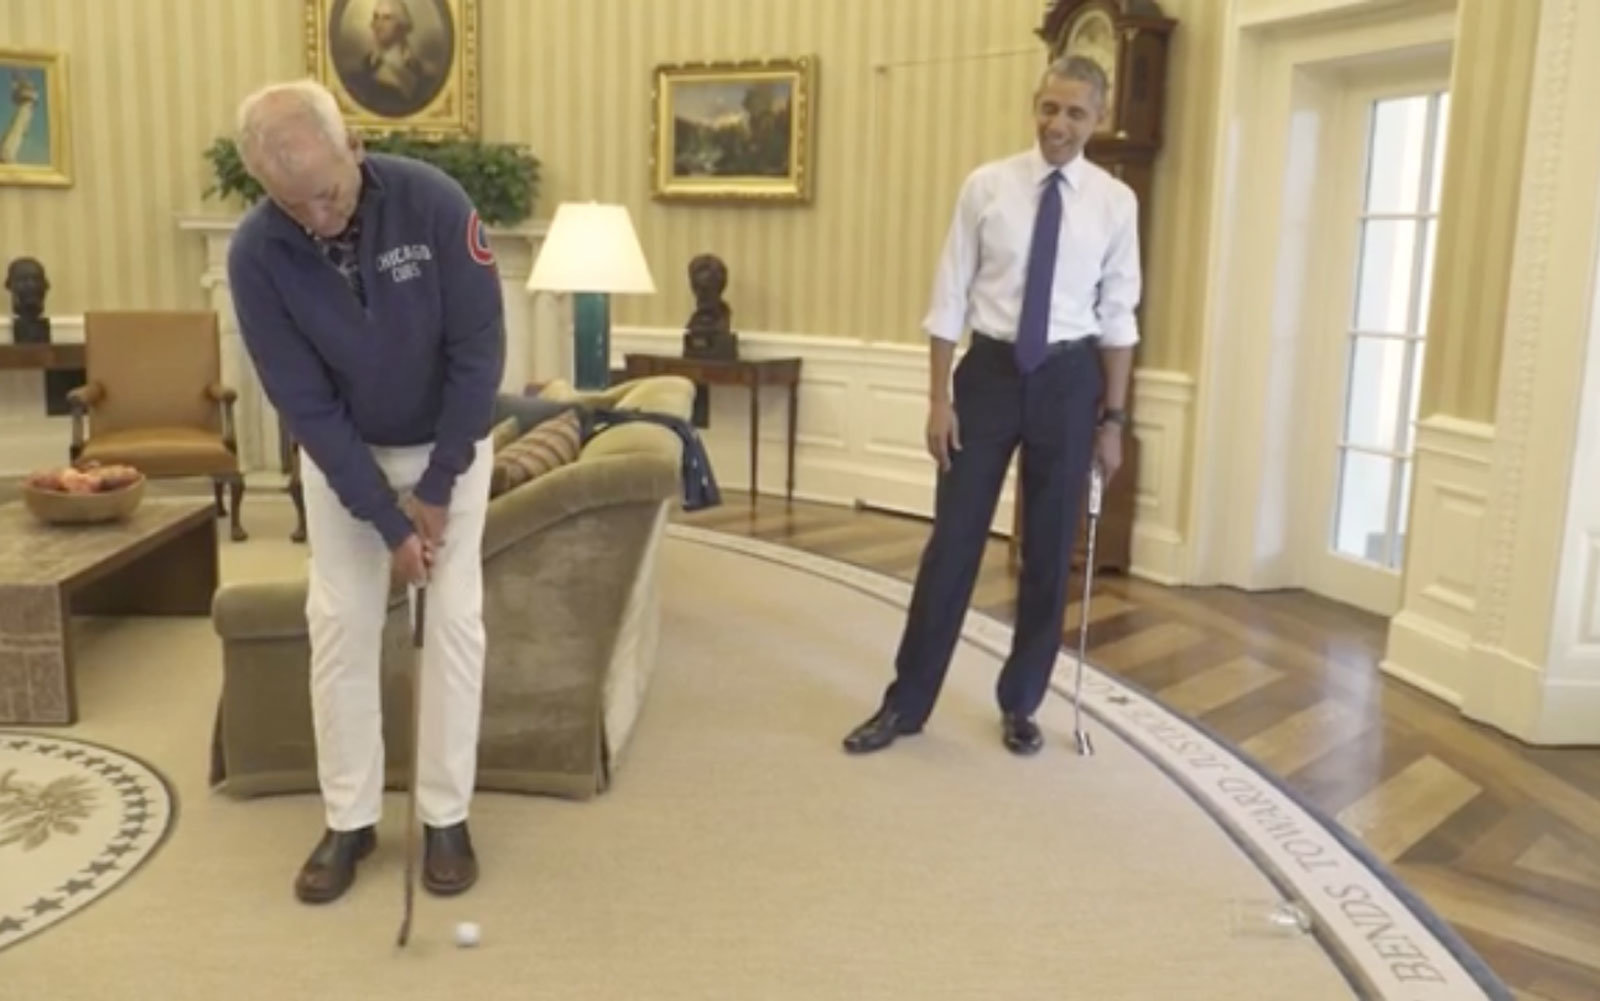 pictures of oval office. Bill Murray And President Barack Obama In The Oval Office. Pictures Of Office